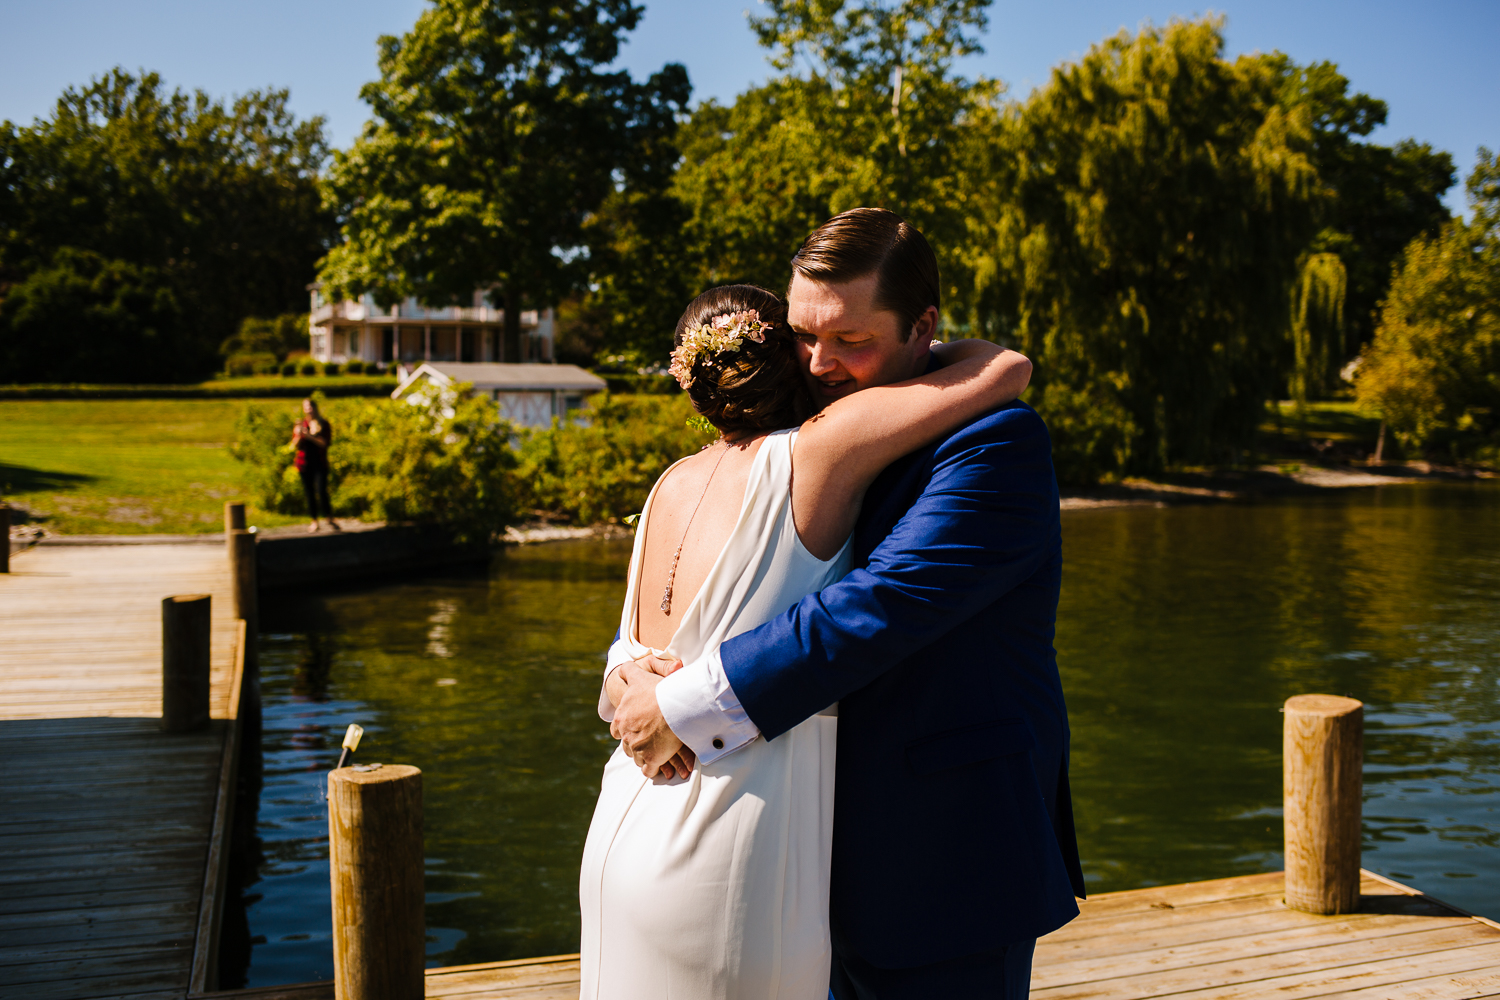 Bride and groom hug on a dock.